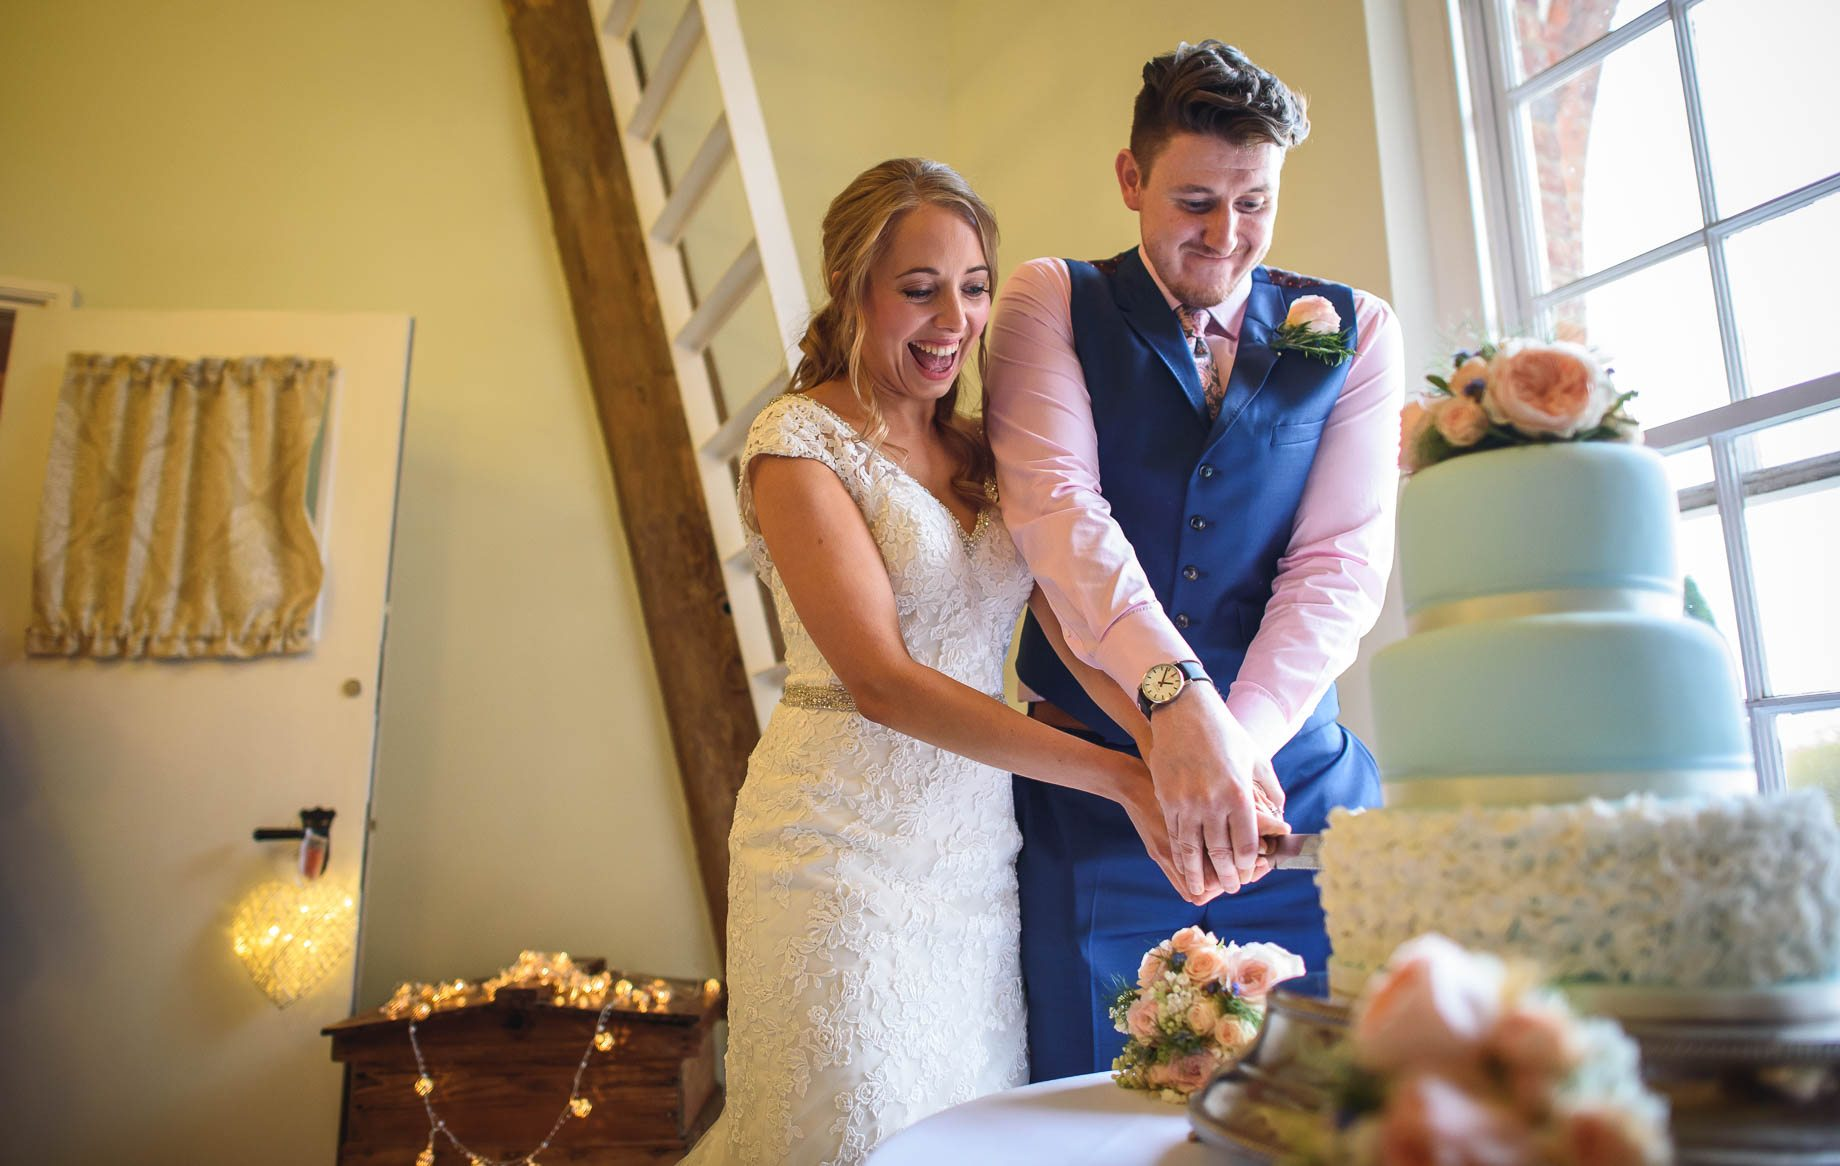 Hampshire wedding photography by Guy Collier - Emily and Tom (157 of 164)